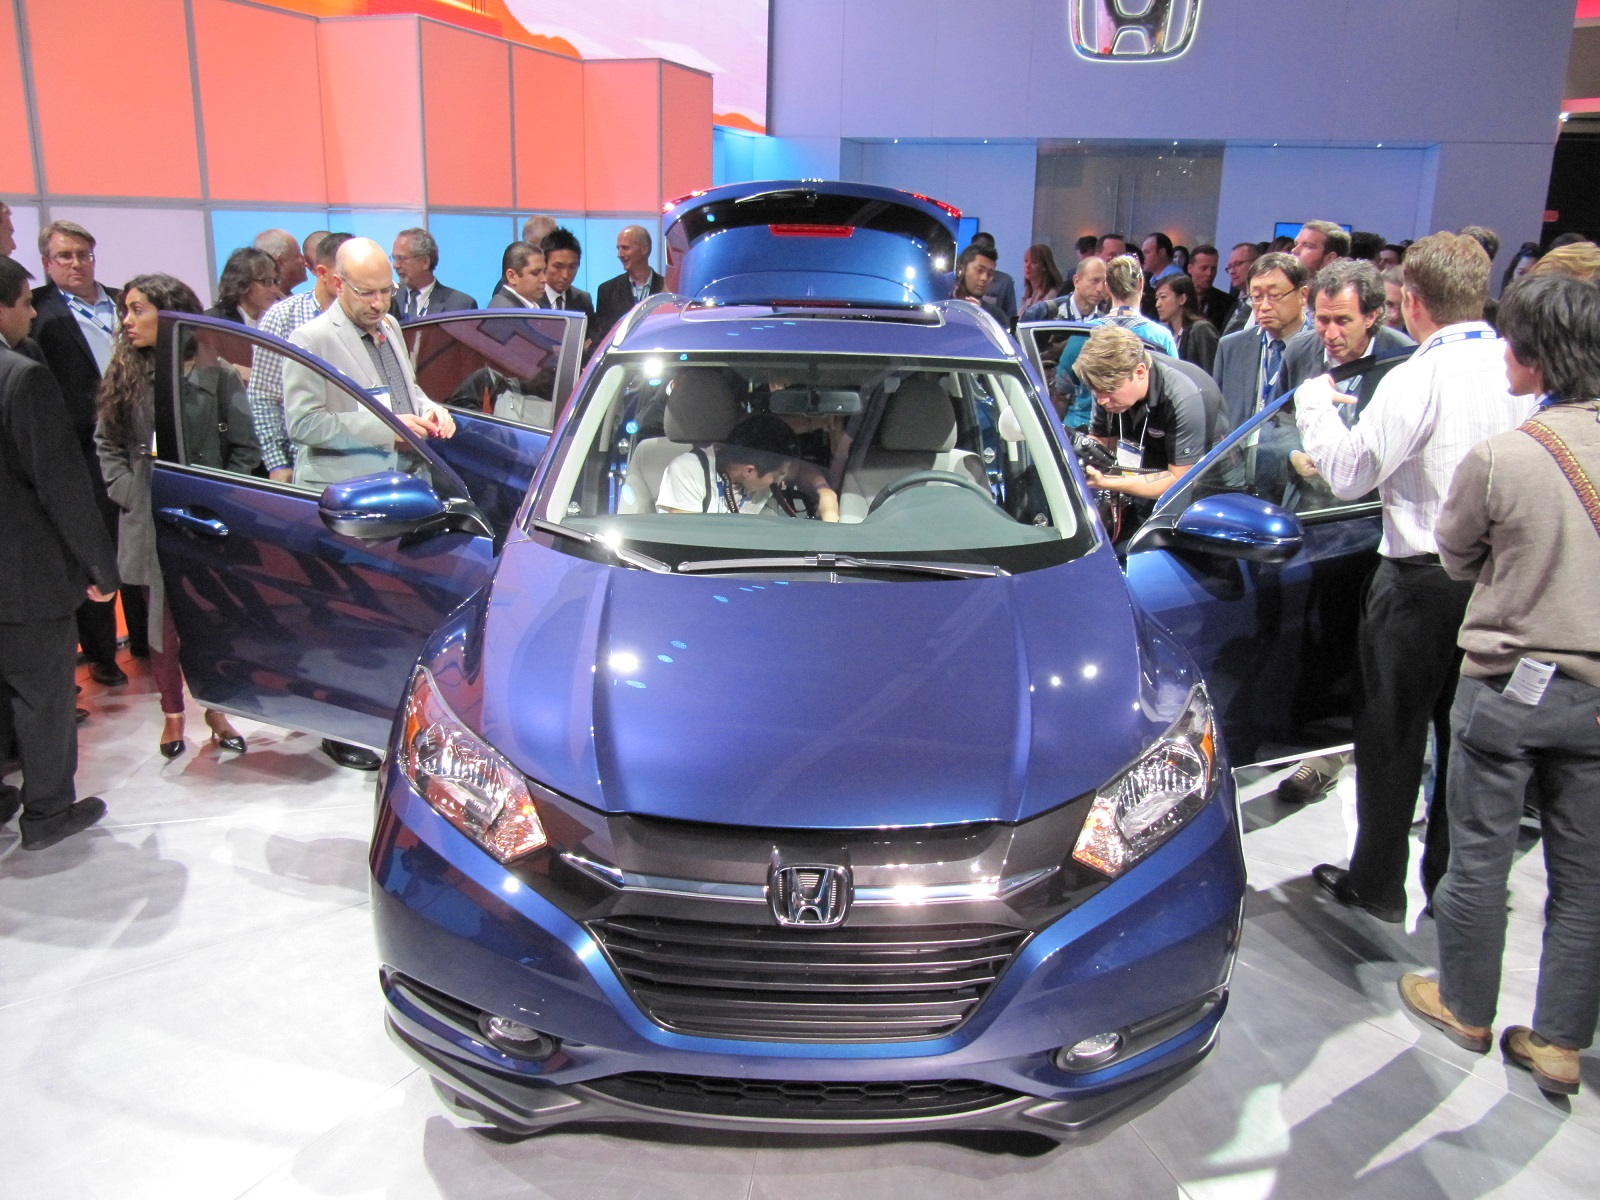 2016-honda-hr-v-debut-at-2014-los-angeles-auto-show_100490779_h.jpg